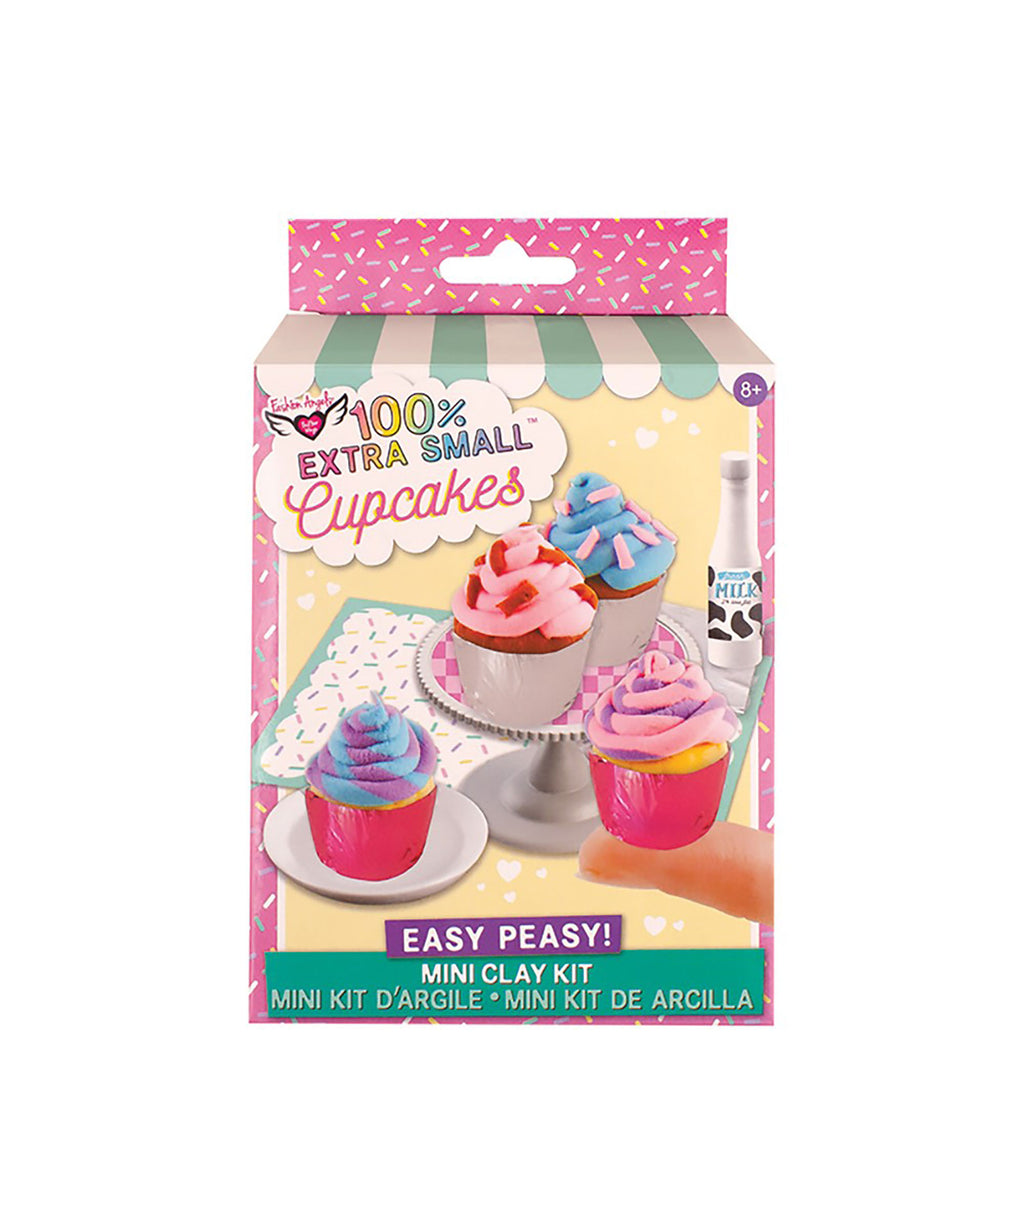 Fashion Angels Mini Clay Cupcakes Kit